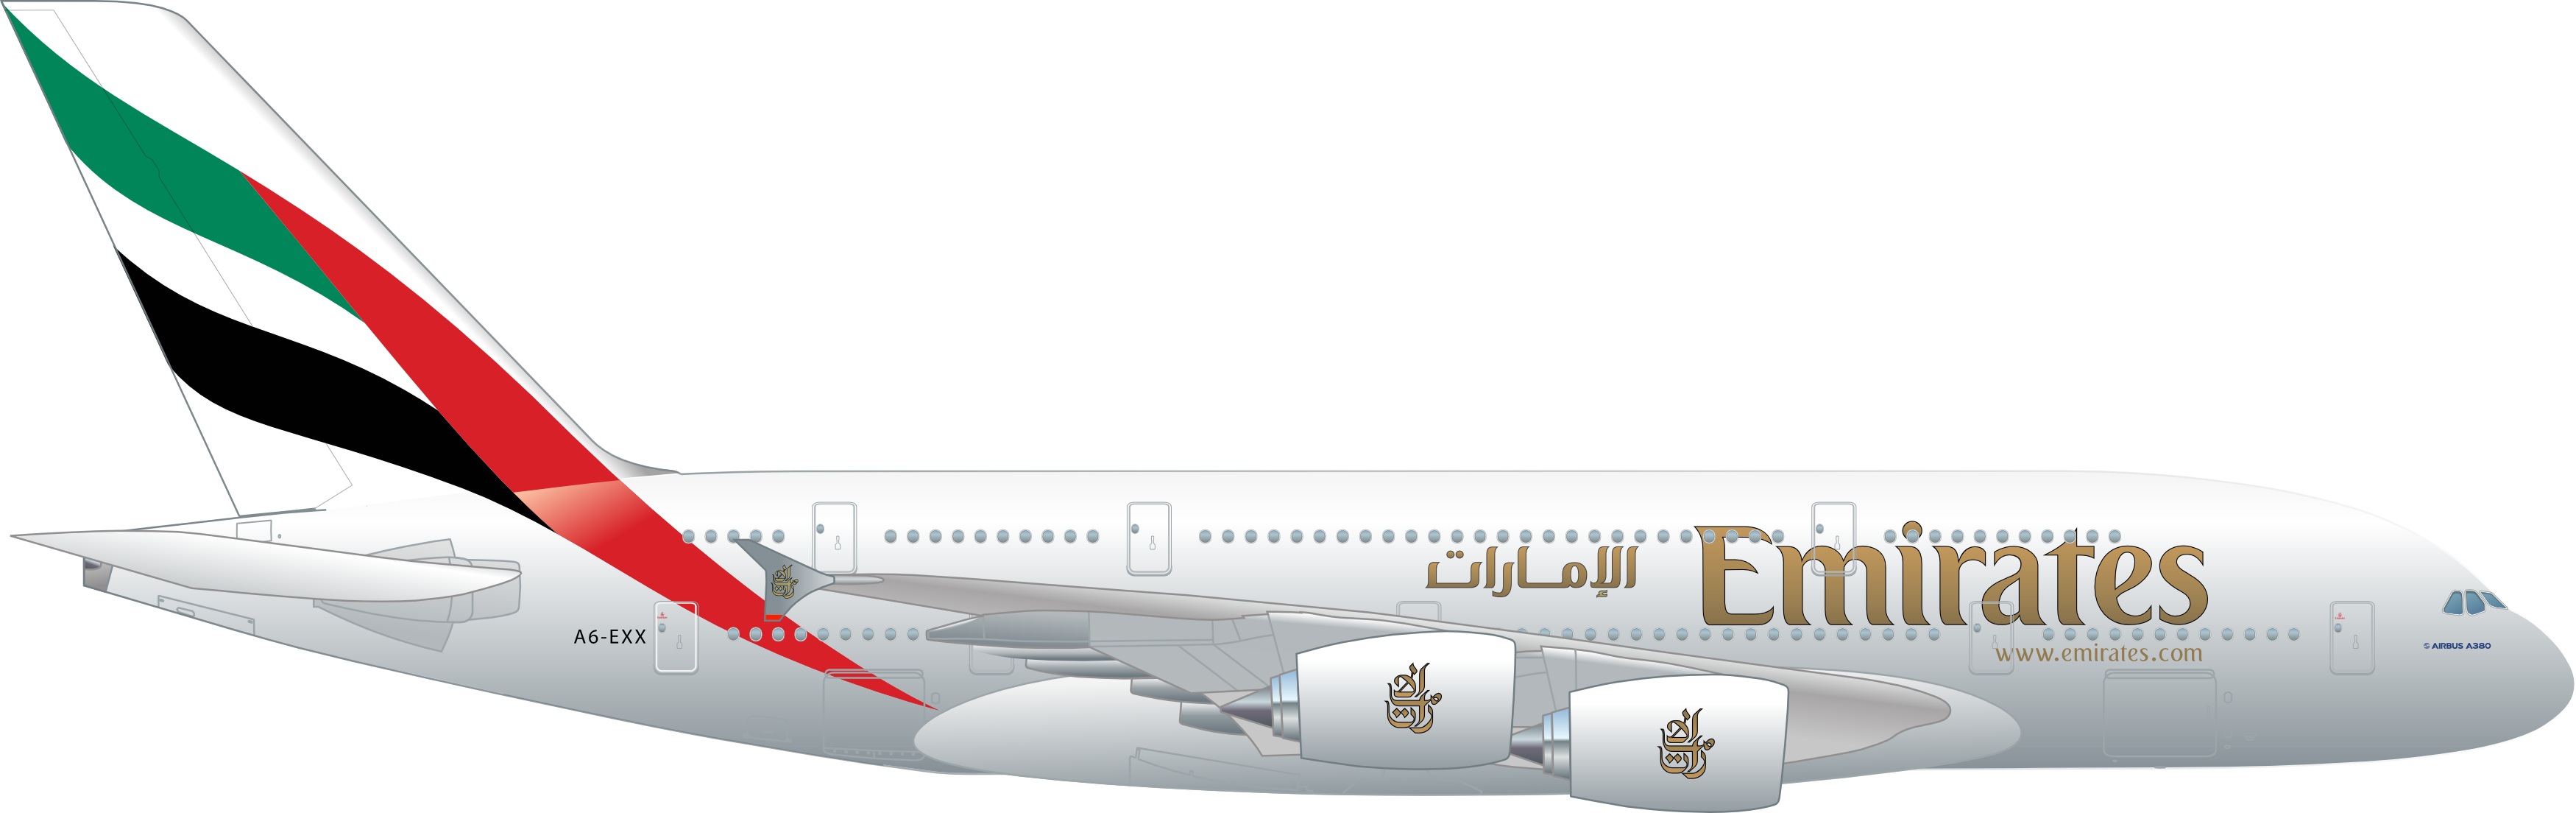 Emirates-Updated-Logo.png Plu